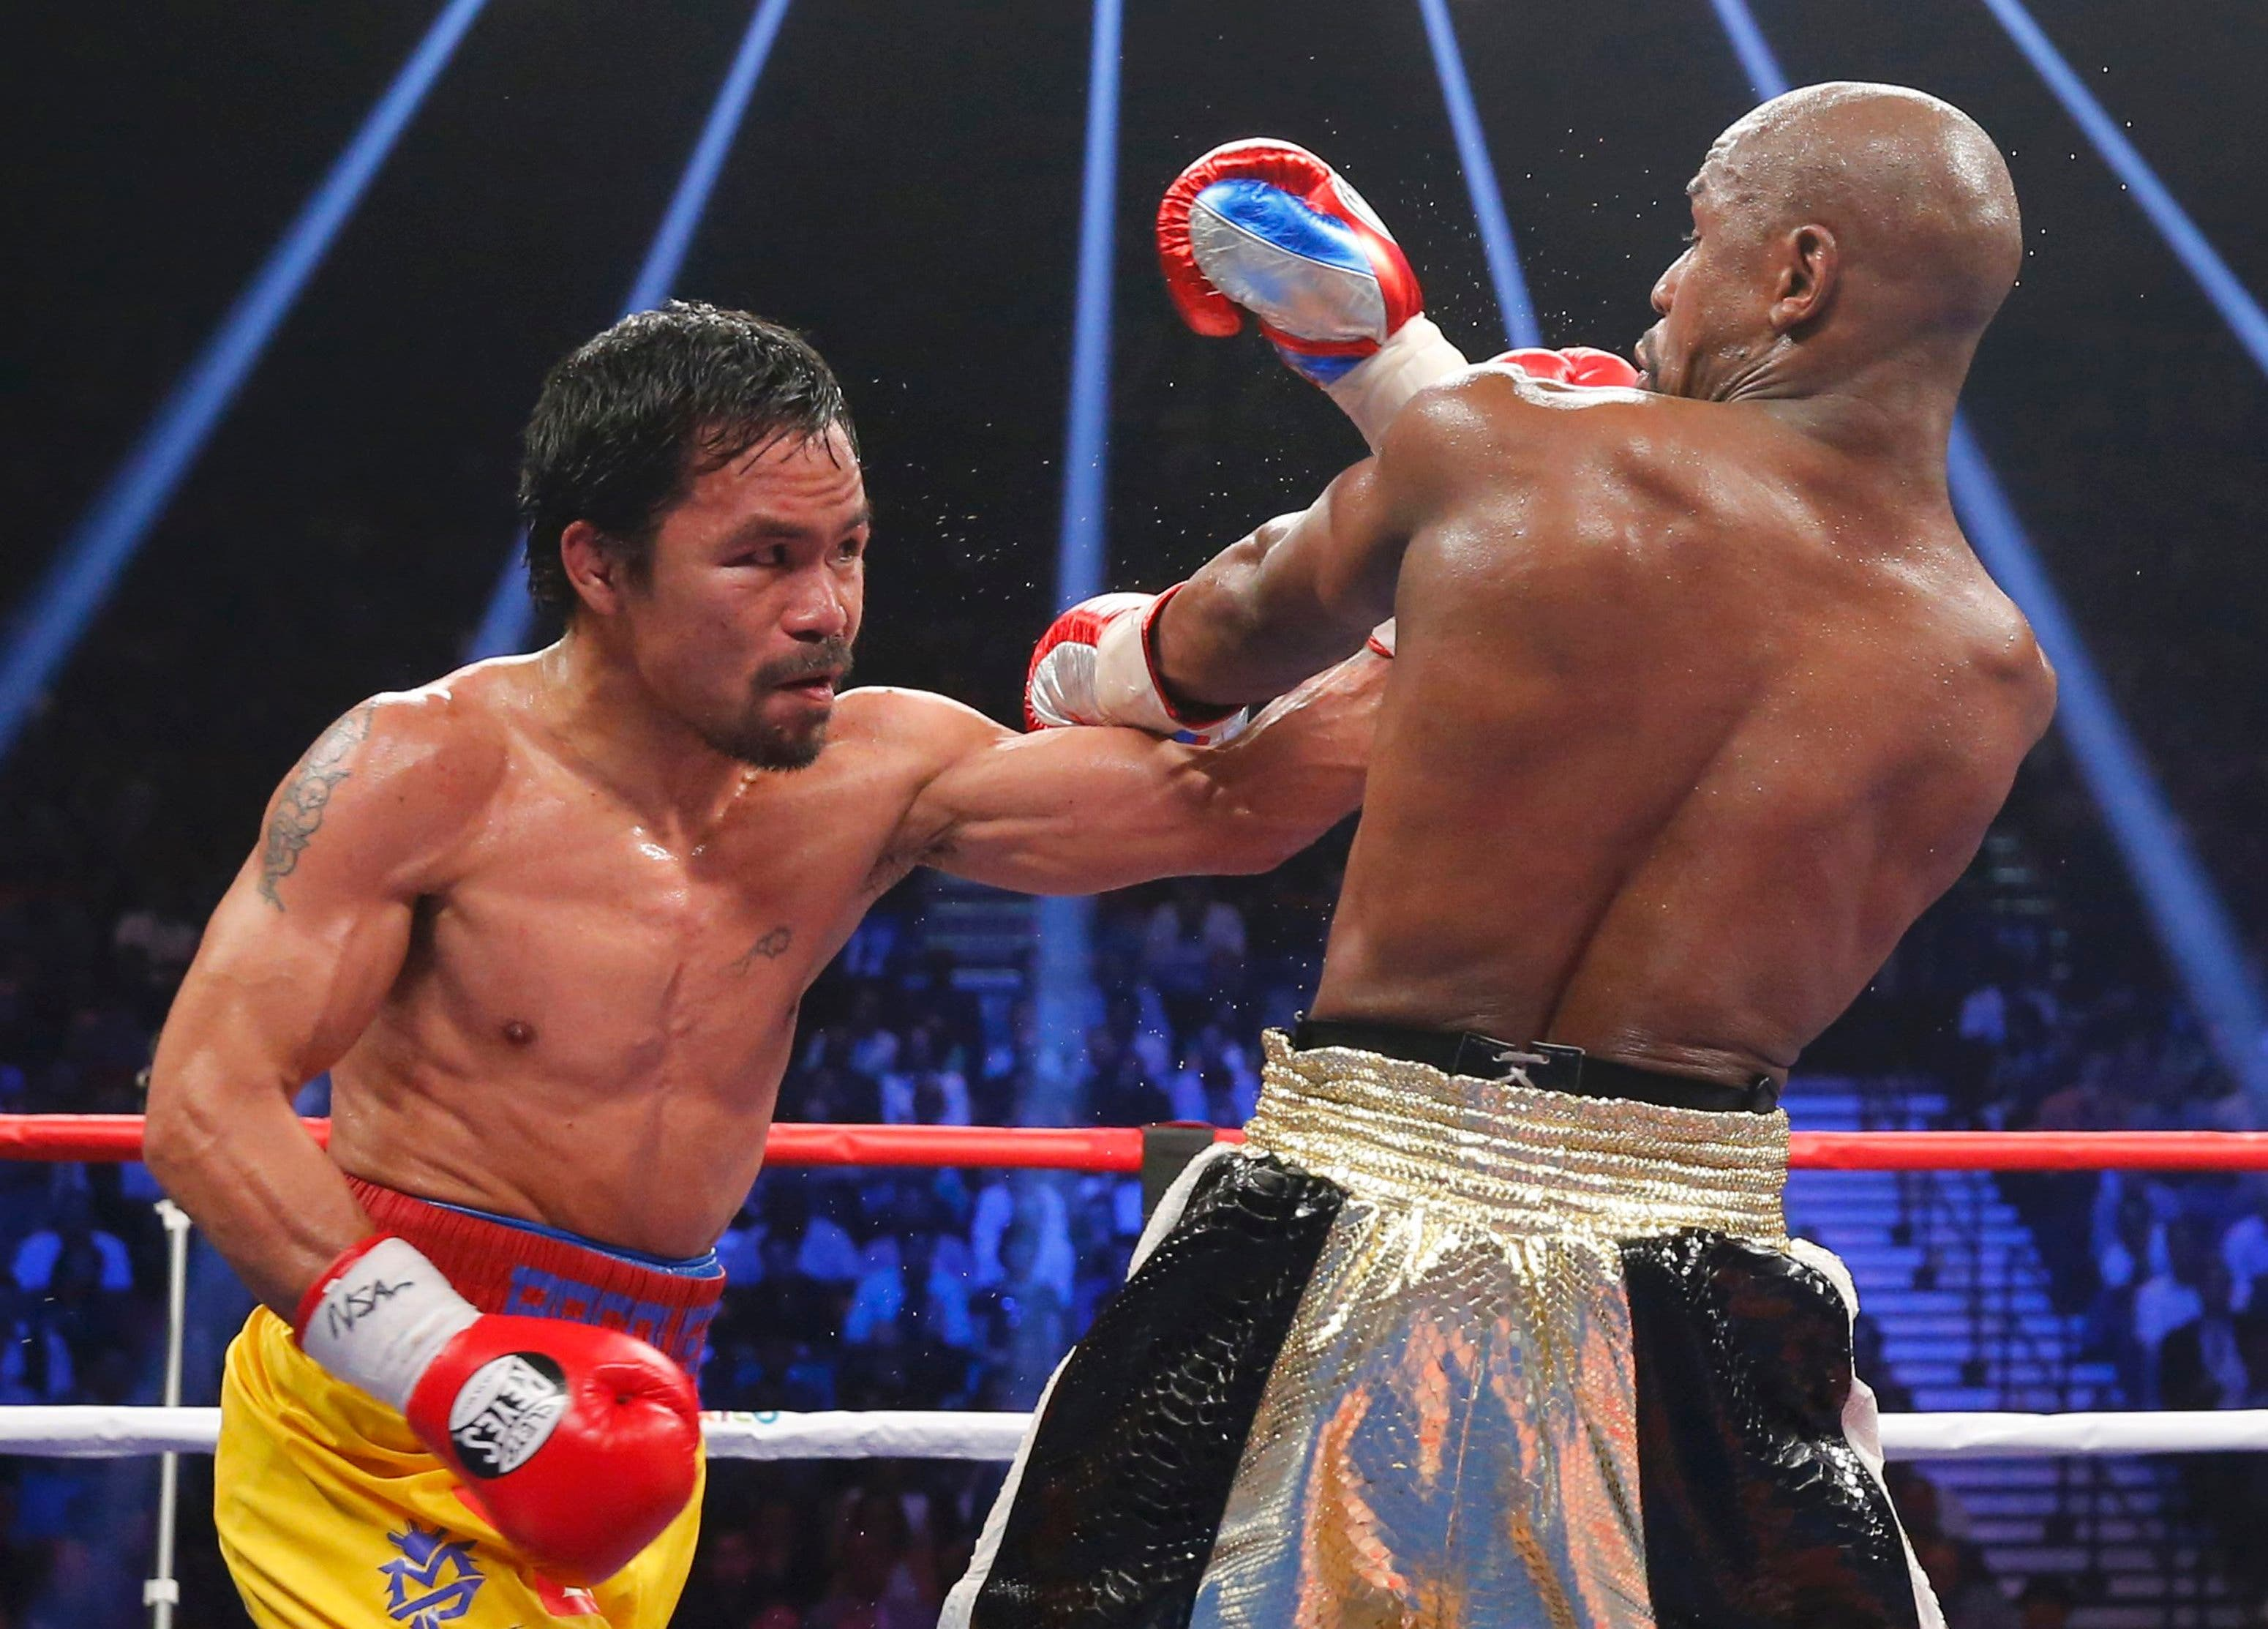 Pacquiao of the Philippines lands a left in the seventh round against Mayweather, Jr. of the U.S. during their welterweight title fight in Las Vegas